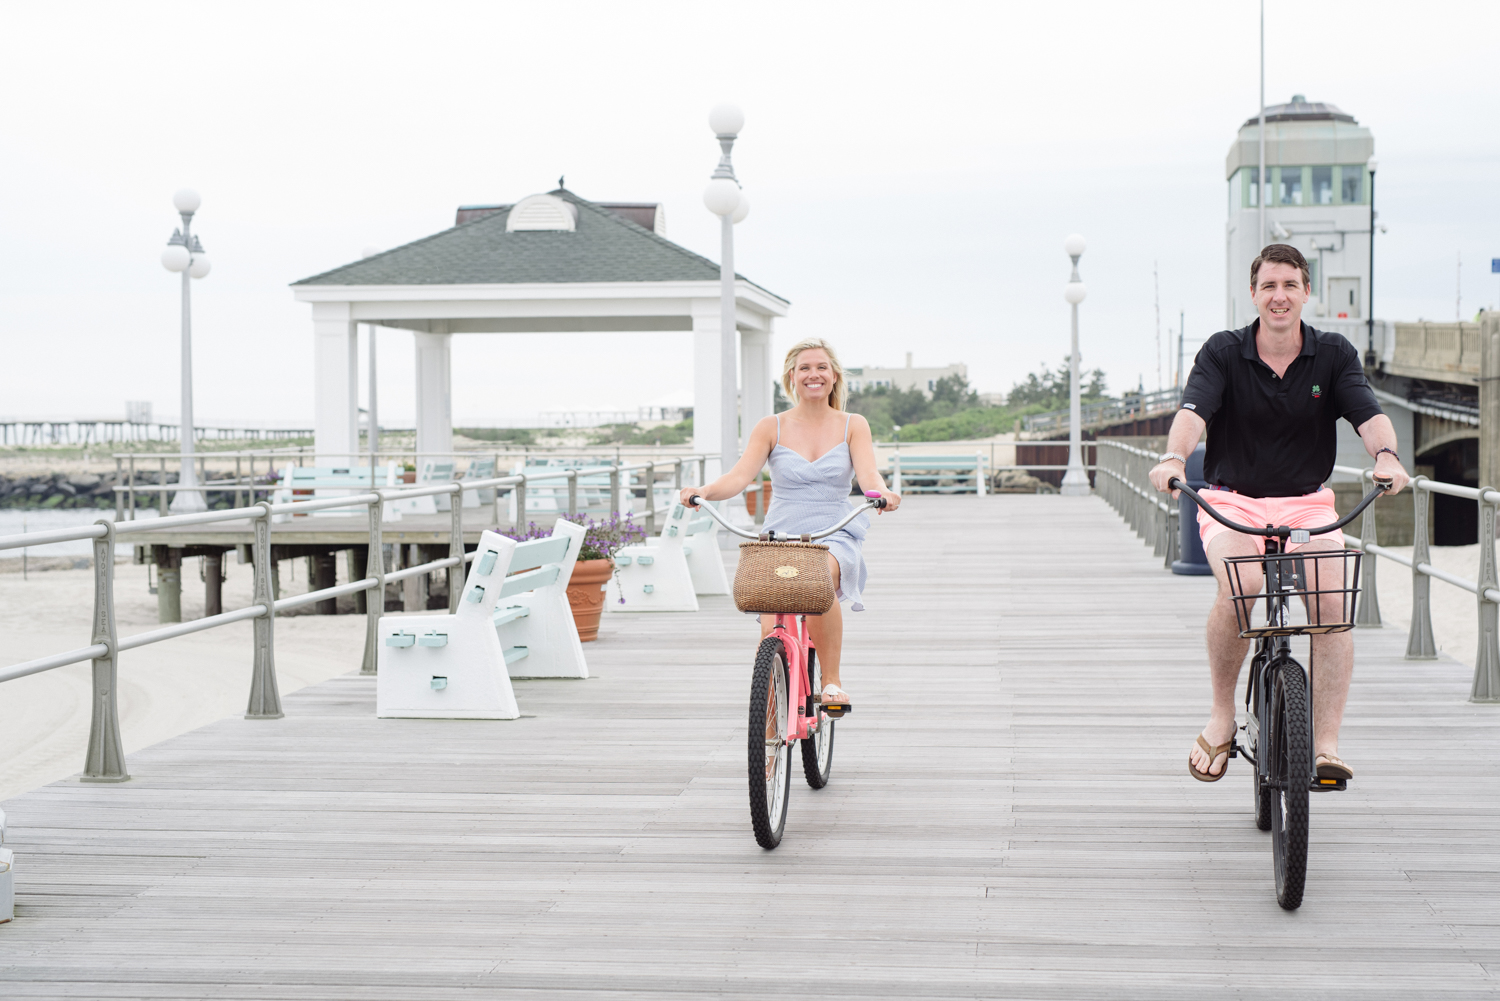 Angela+Troy- Sunrise Beach Engagement Session- Avon By The Sea New Jersey- Olivia Christina Photo-32.JPG